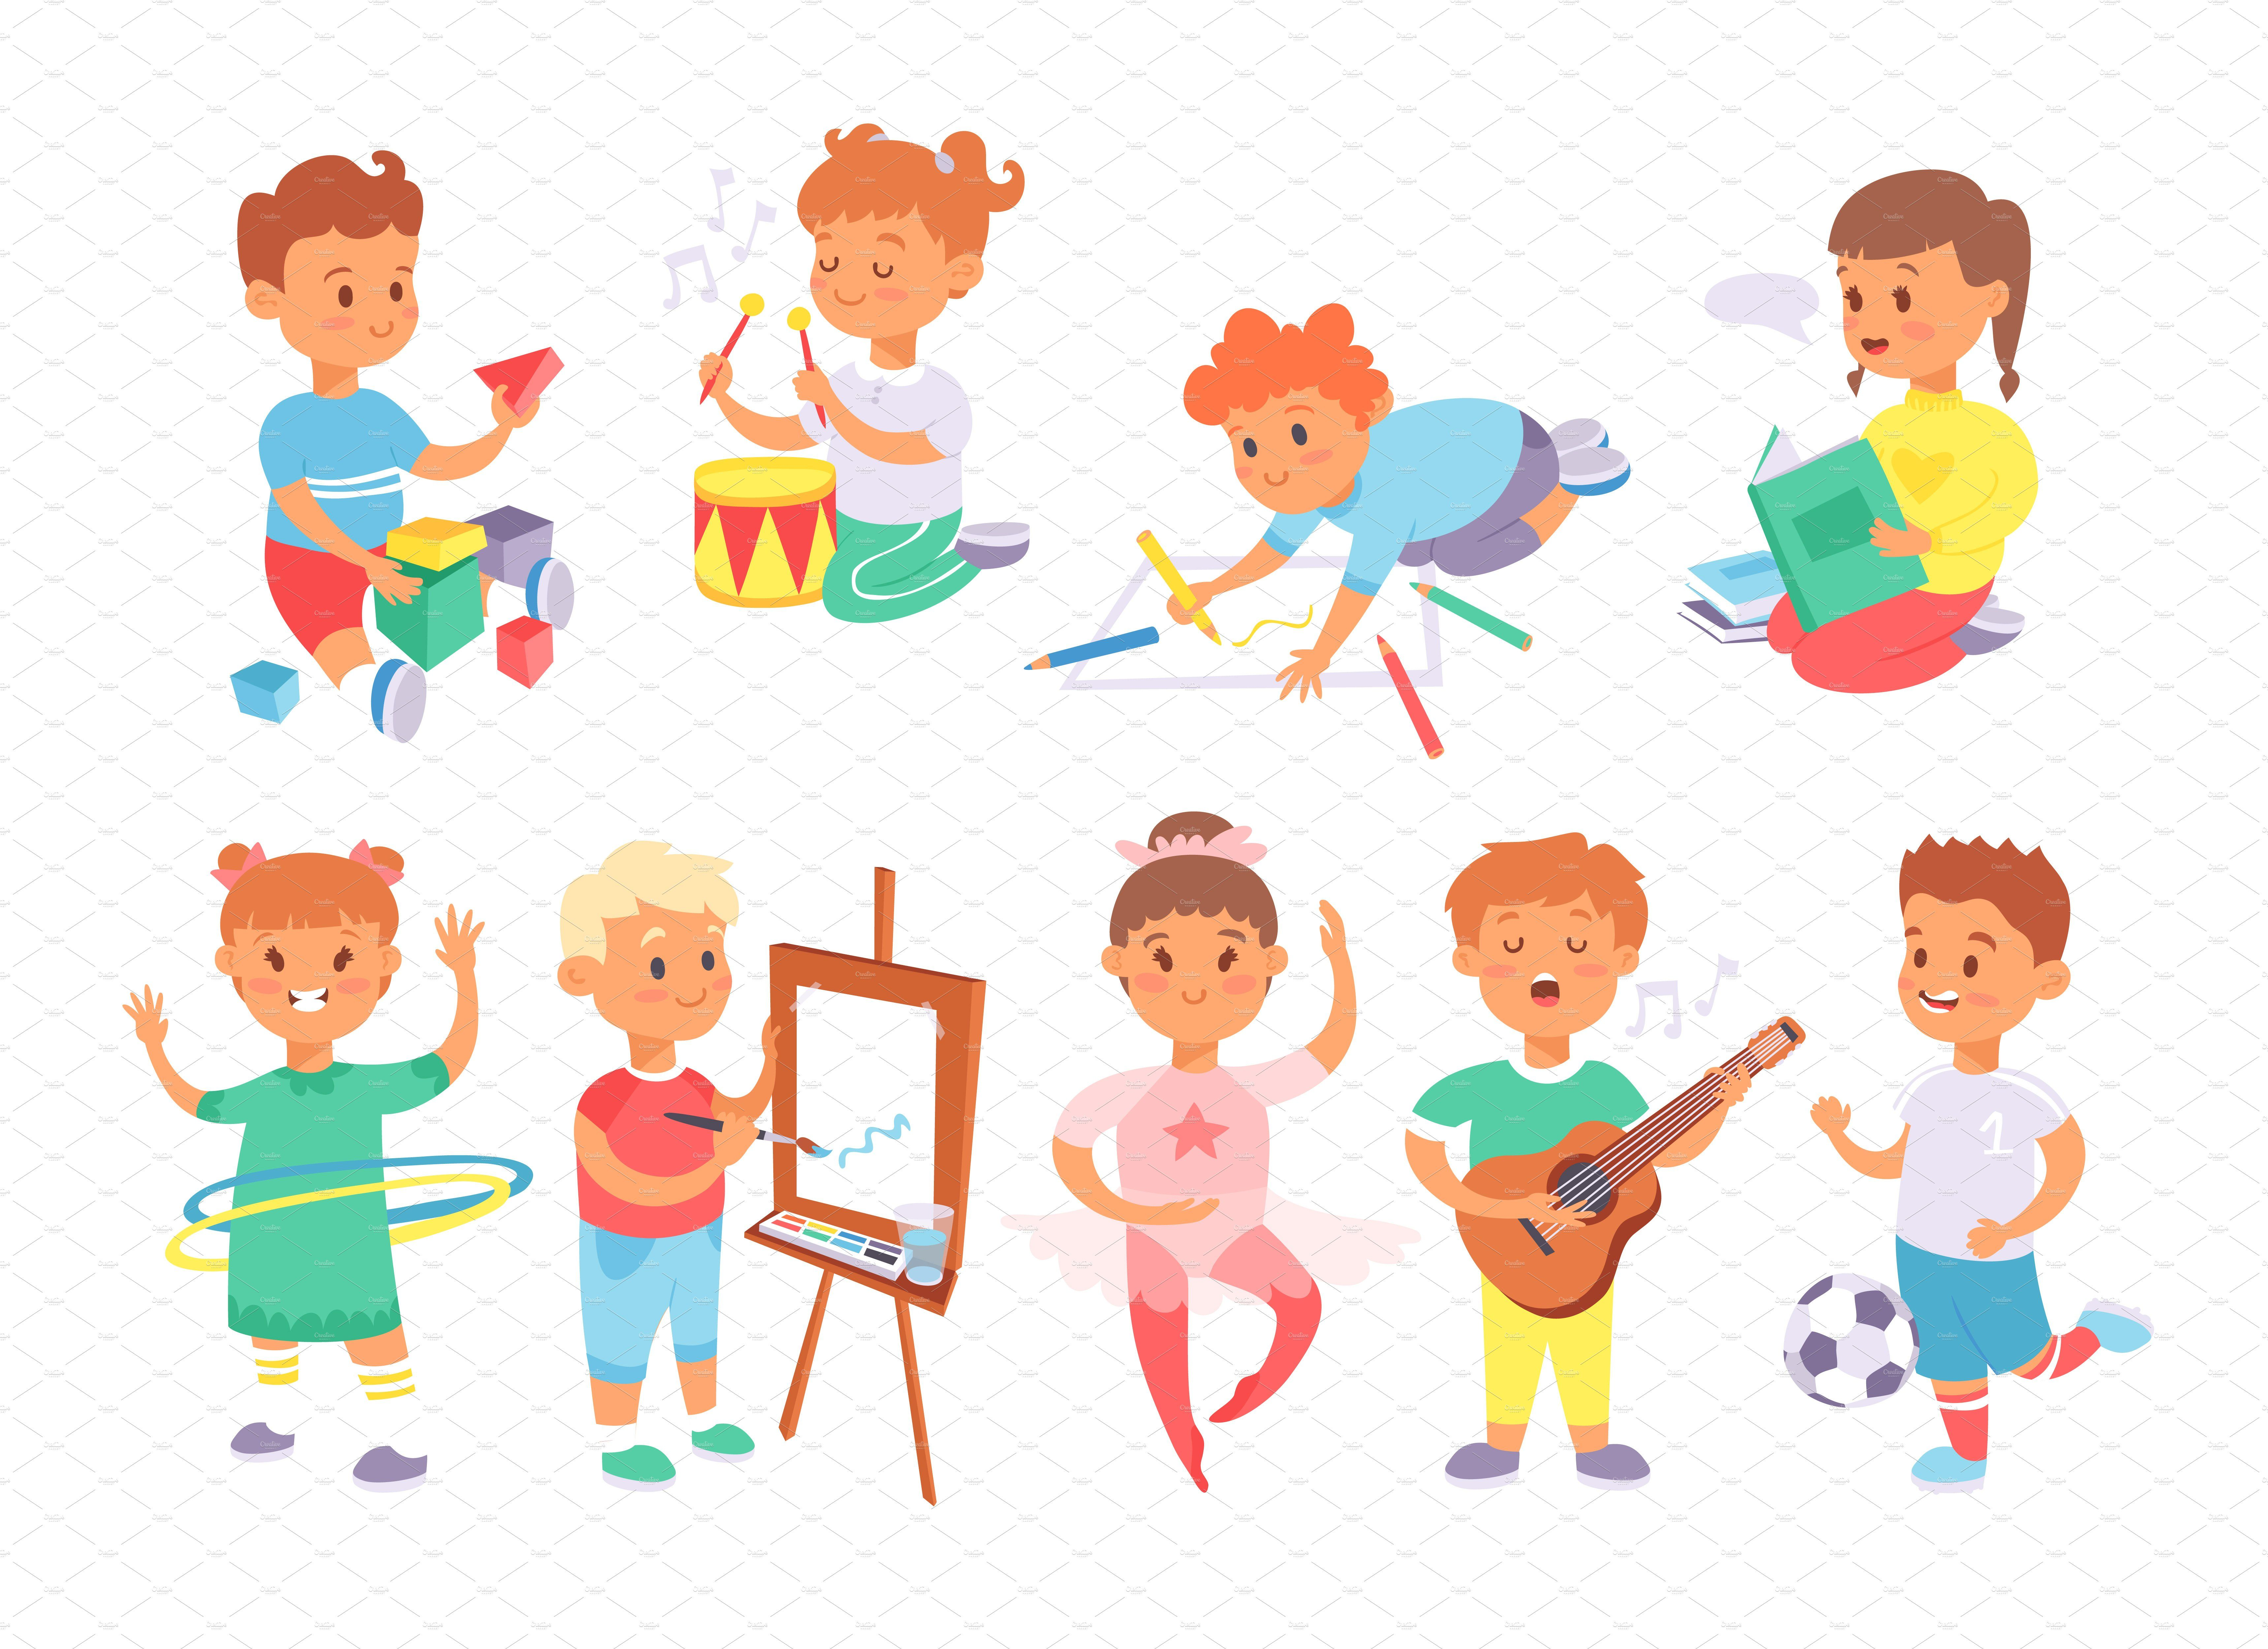 Children Playing Different Games Kids Playing Different Games Children Illustration